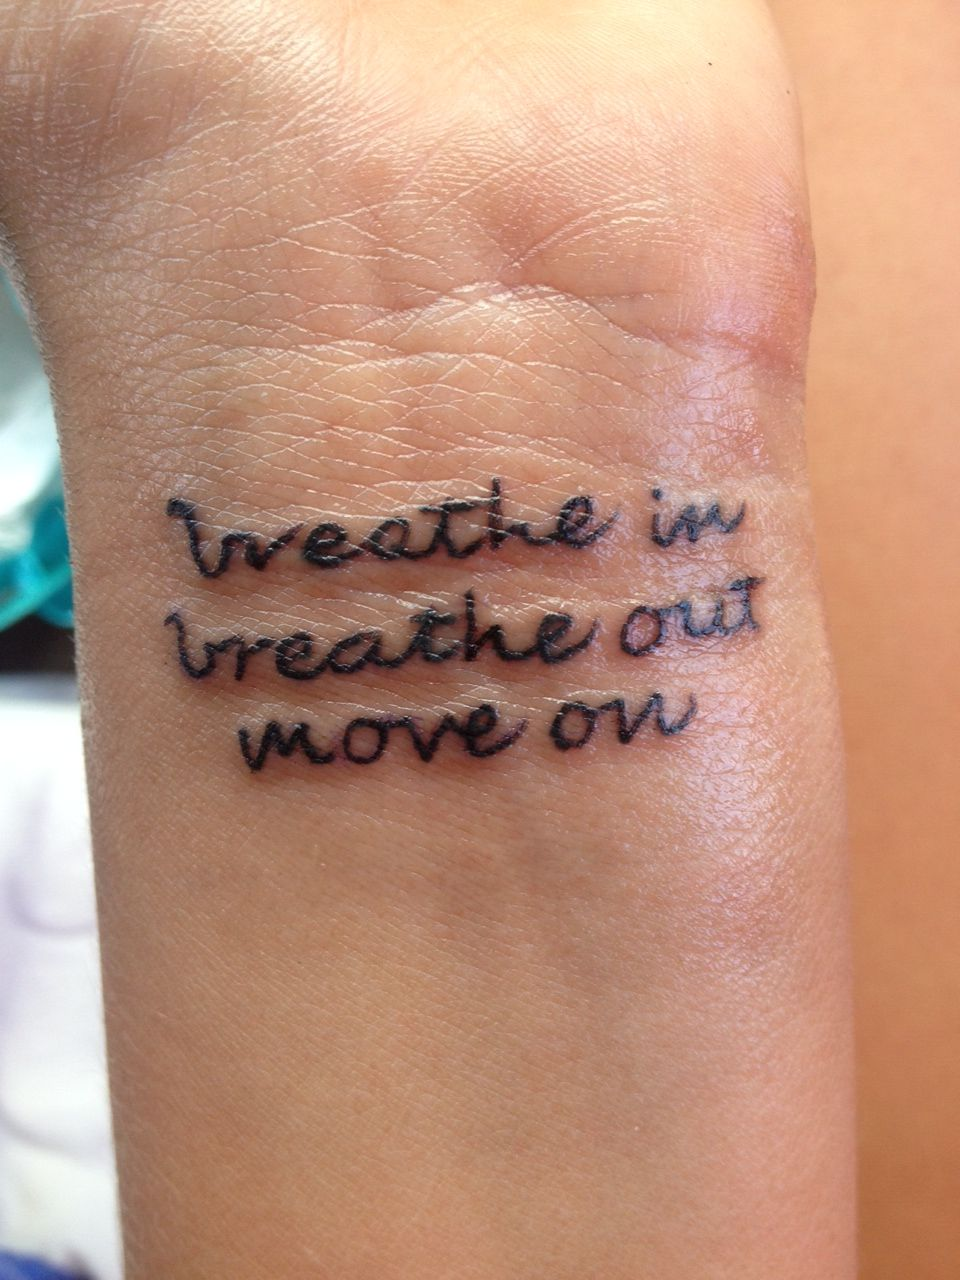 Tattoo In Memory Of My Uncle, He Loved This Quote By Jimmy